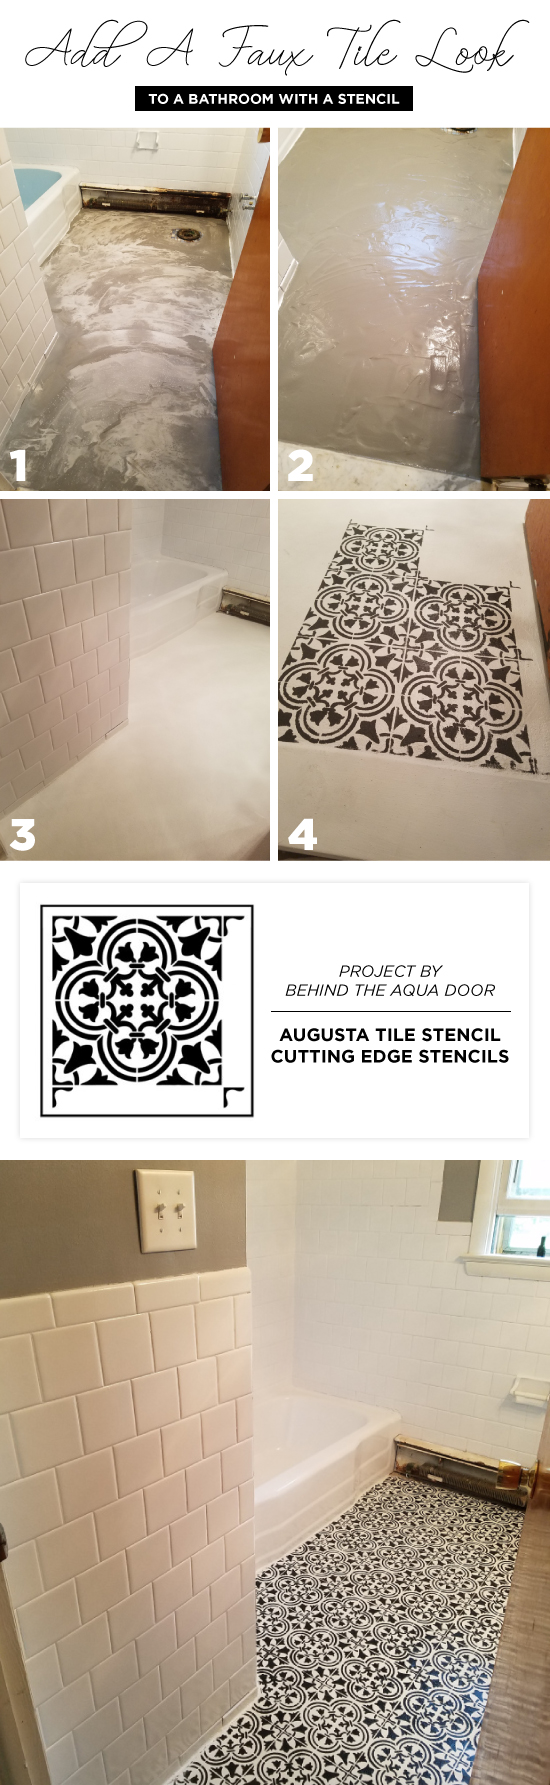 Add A Faux Tile Look To A Bathroom With A Stencil - Stencil Stories ...